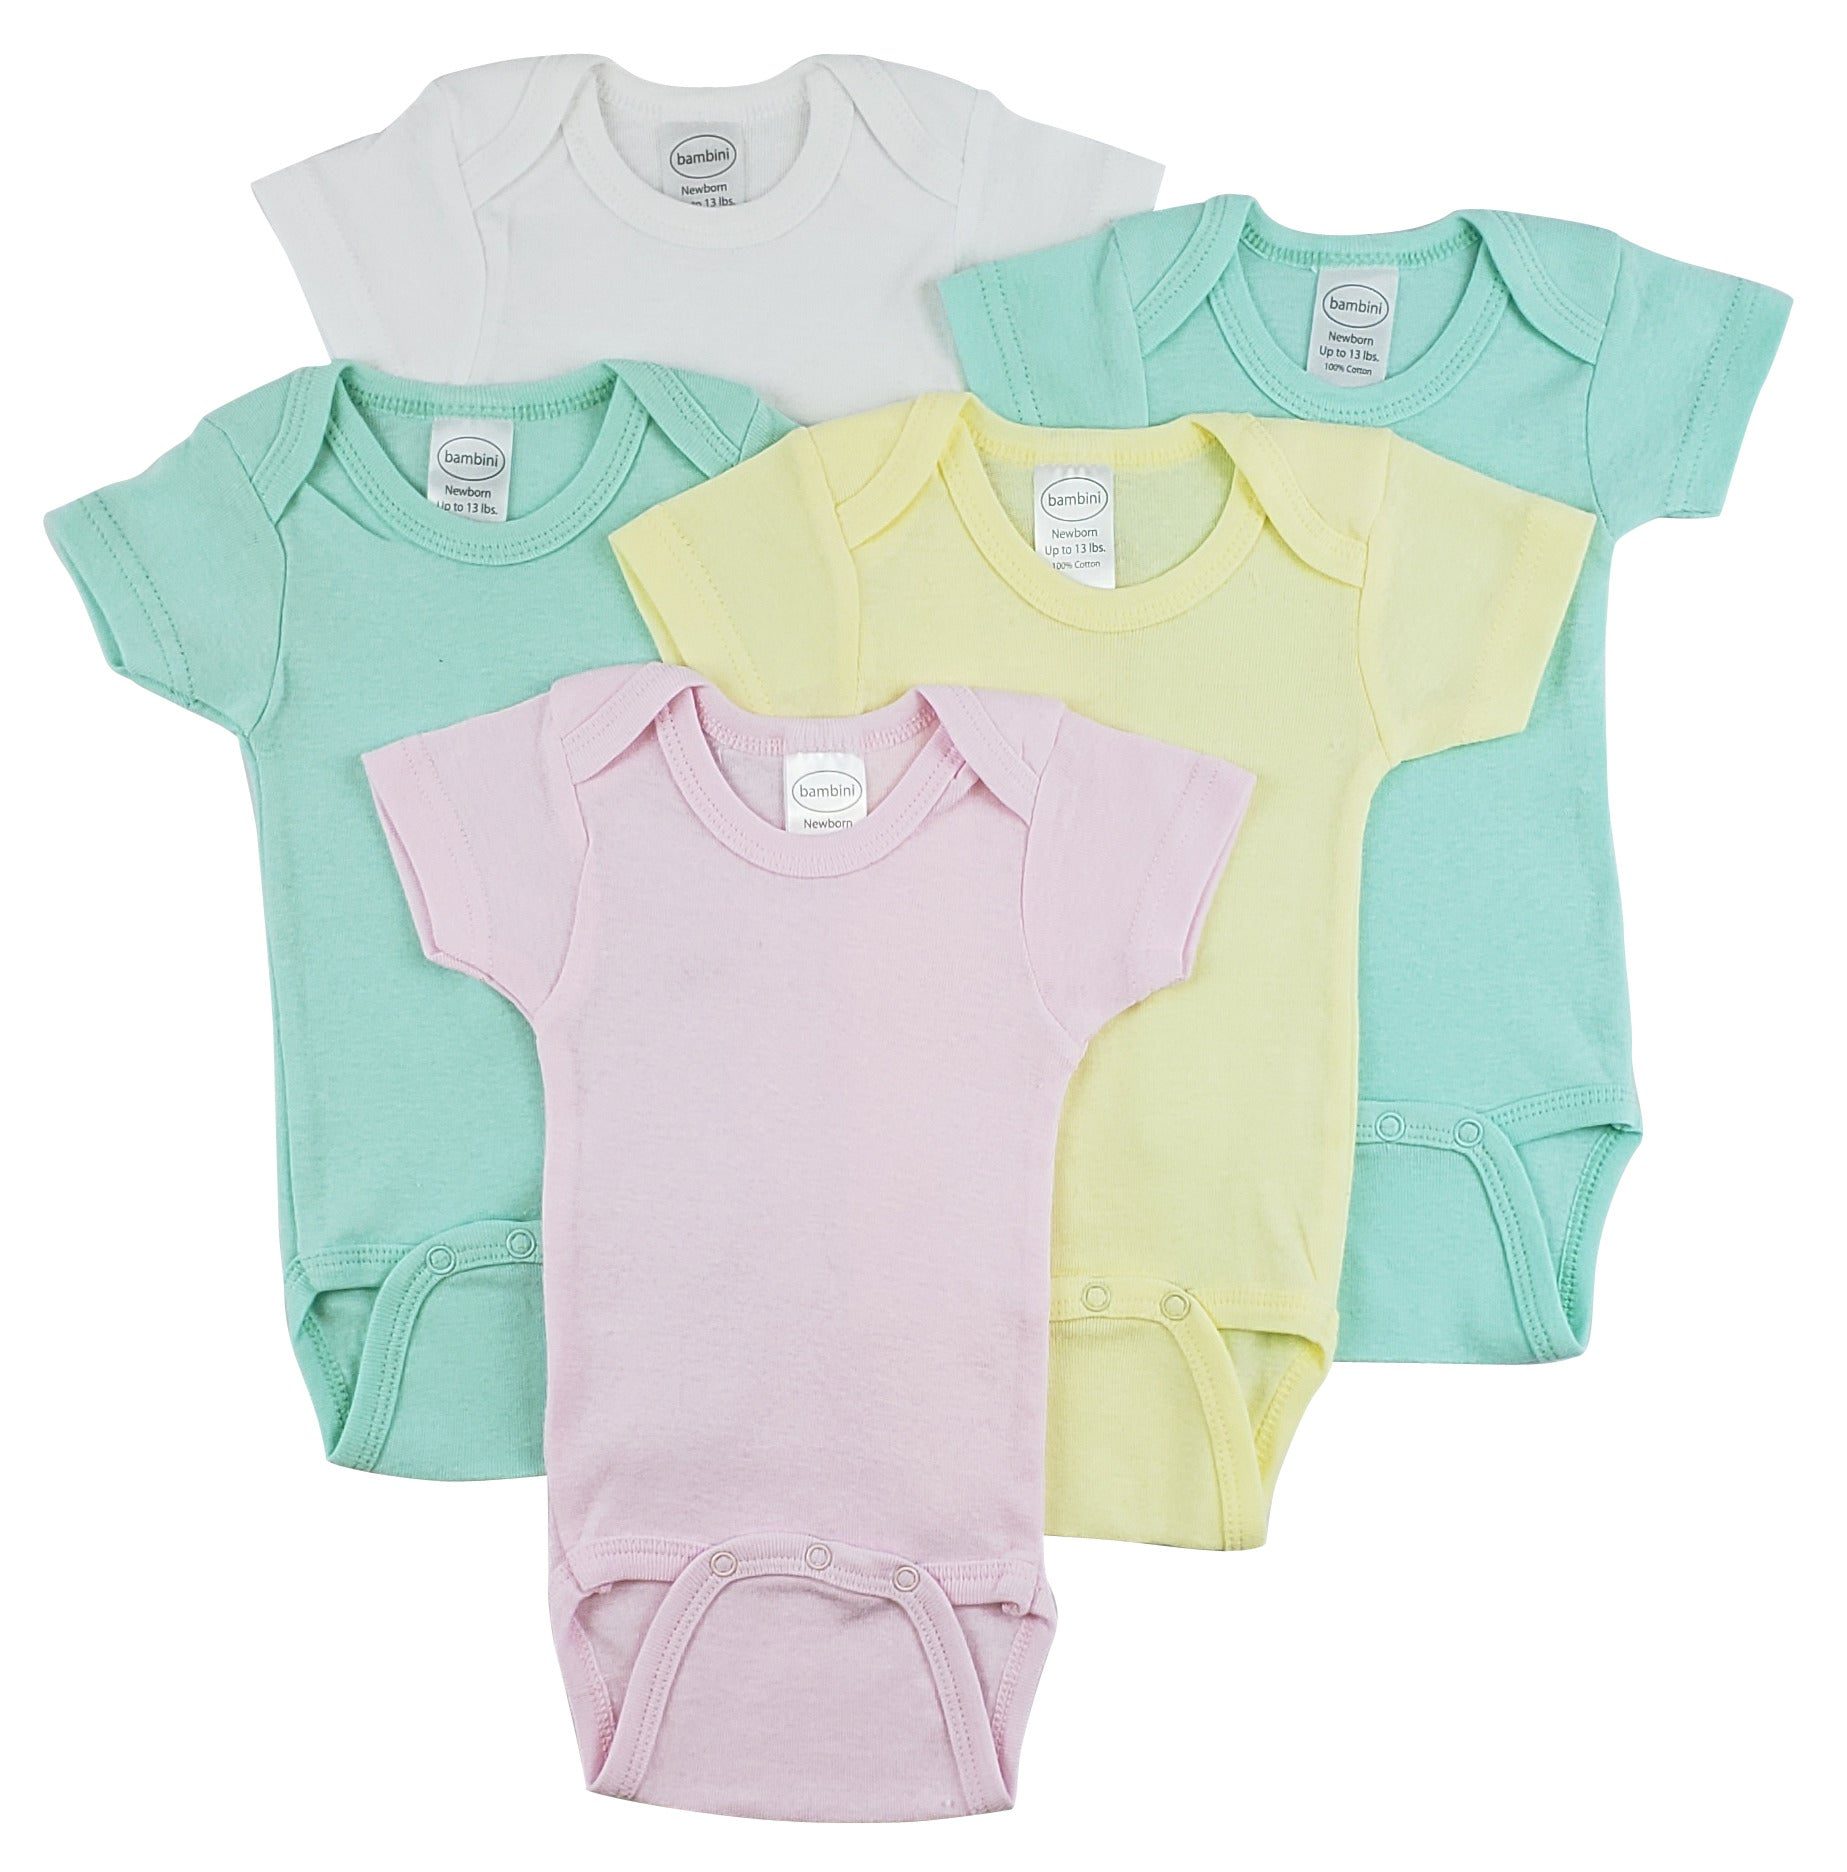 Bambini Short Sleeve One Piece 5 Pack